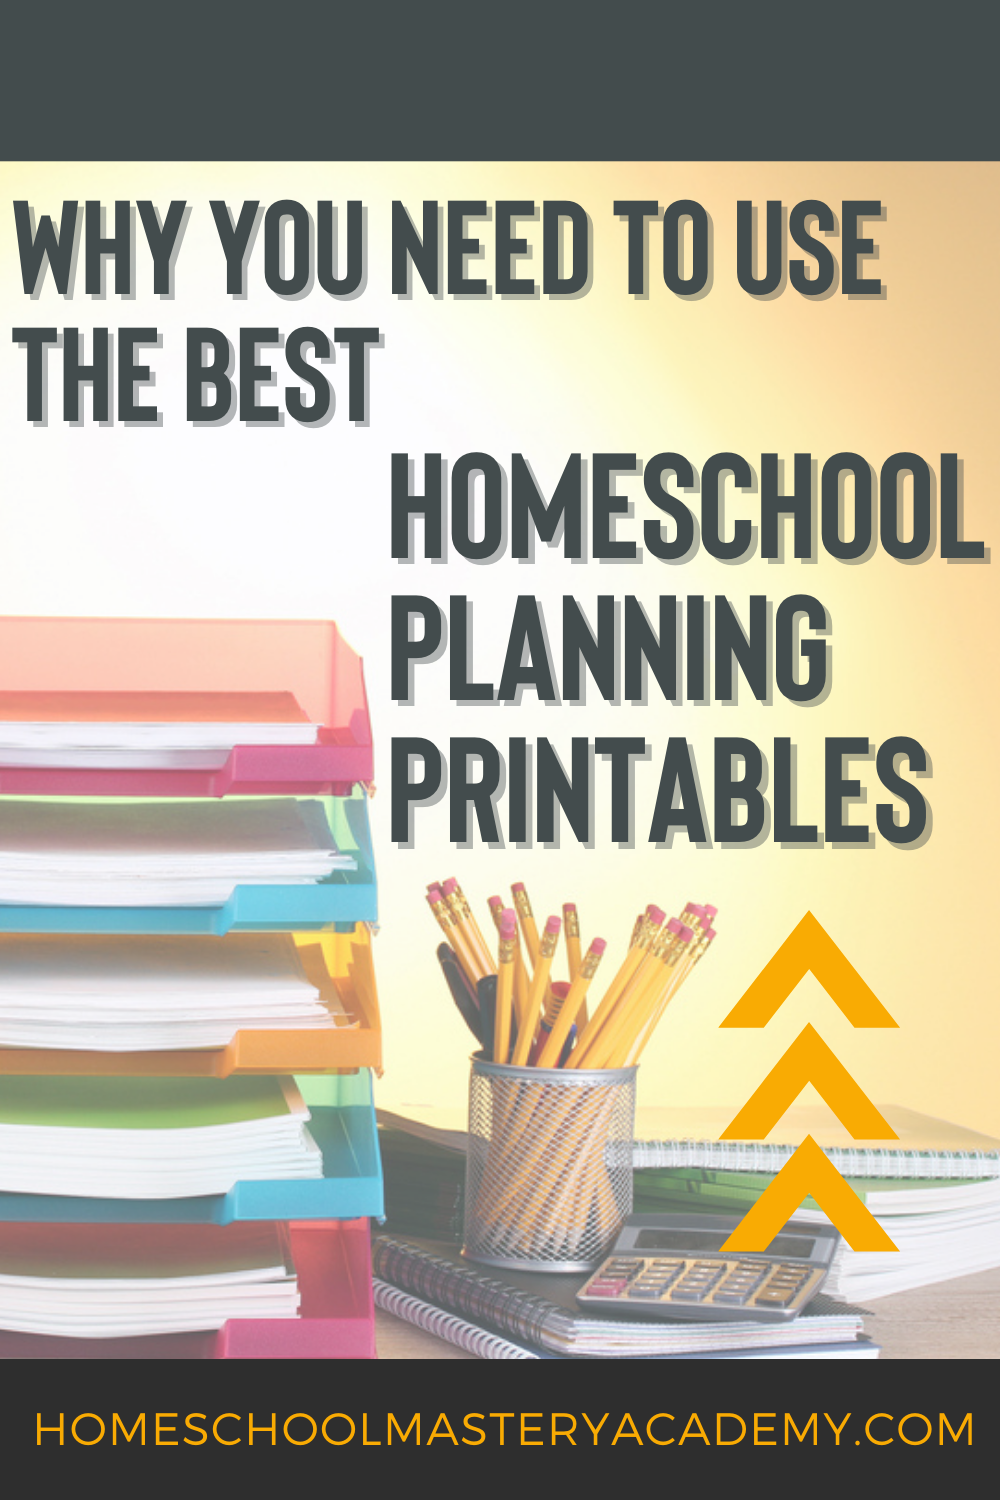 Homeschool Planning Printables